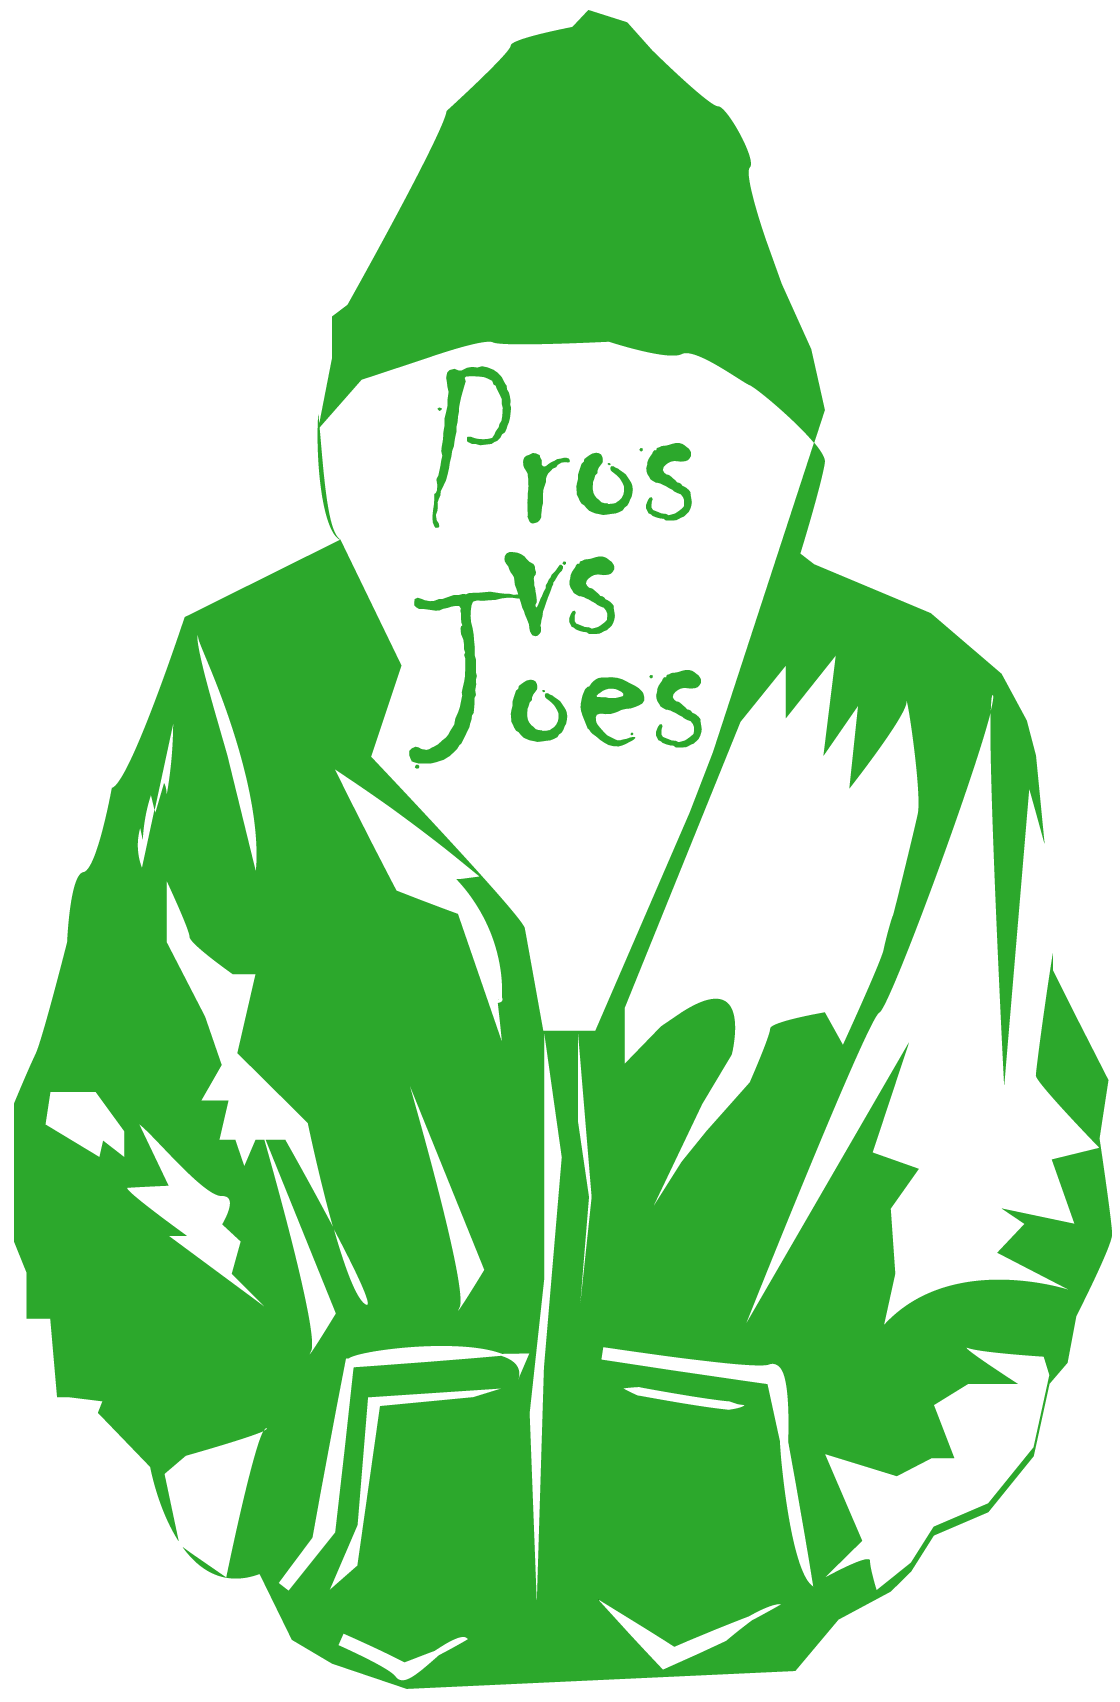 Prosvjoes ctf . Jail clipart capture the flag